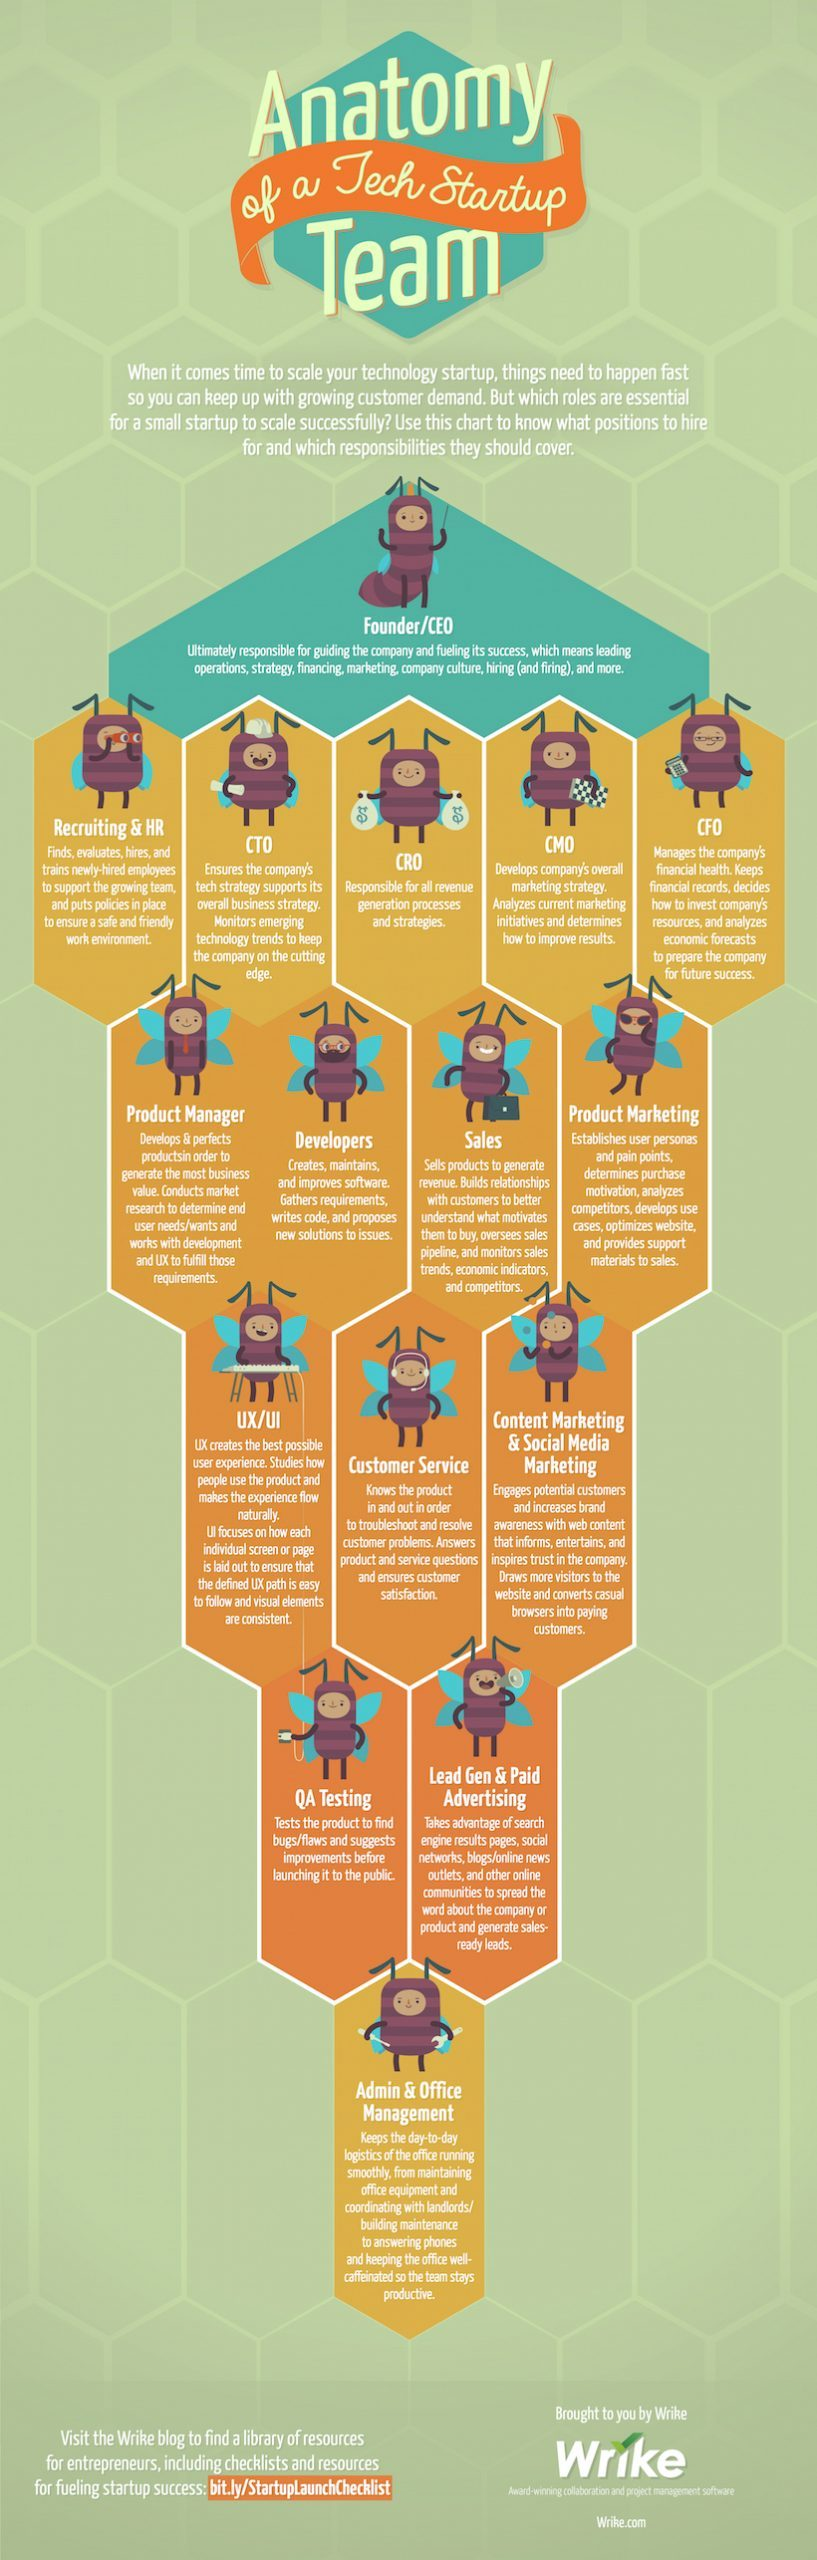 infographic-anatomy-of-a-tech-startup-team-2